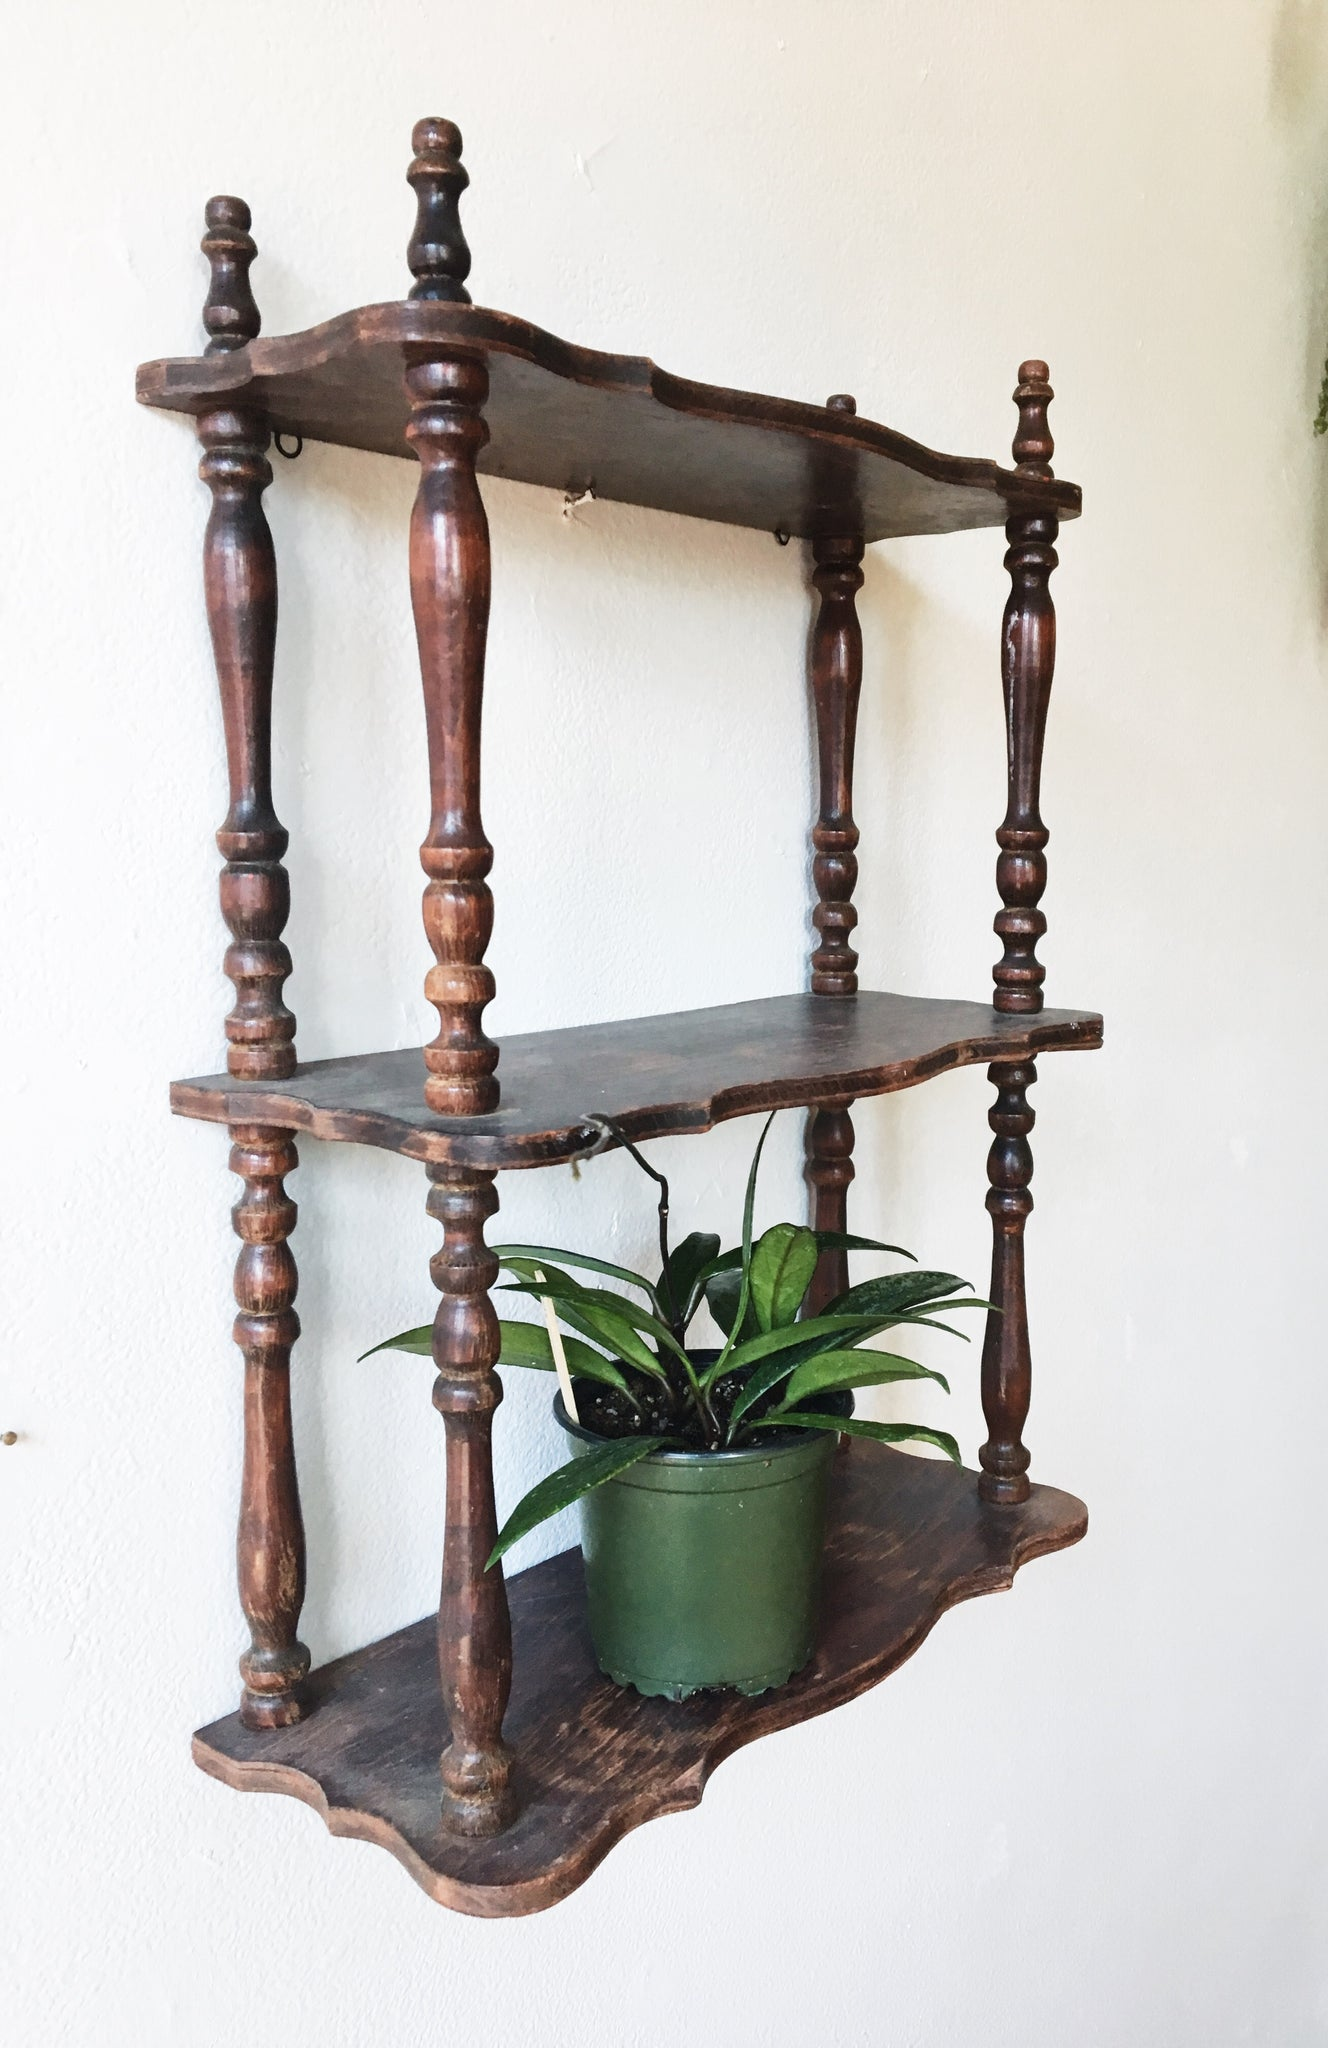 Vintage Spindle shelf